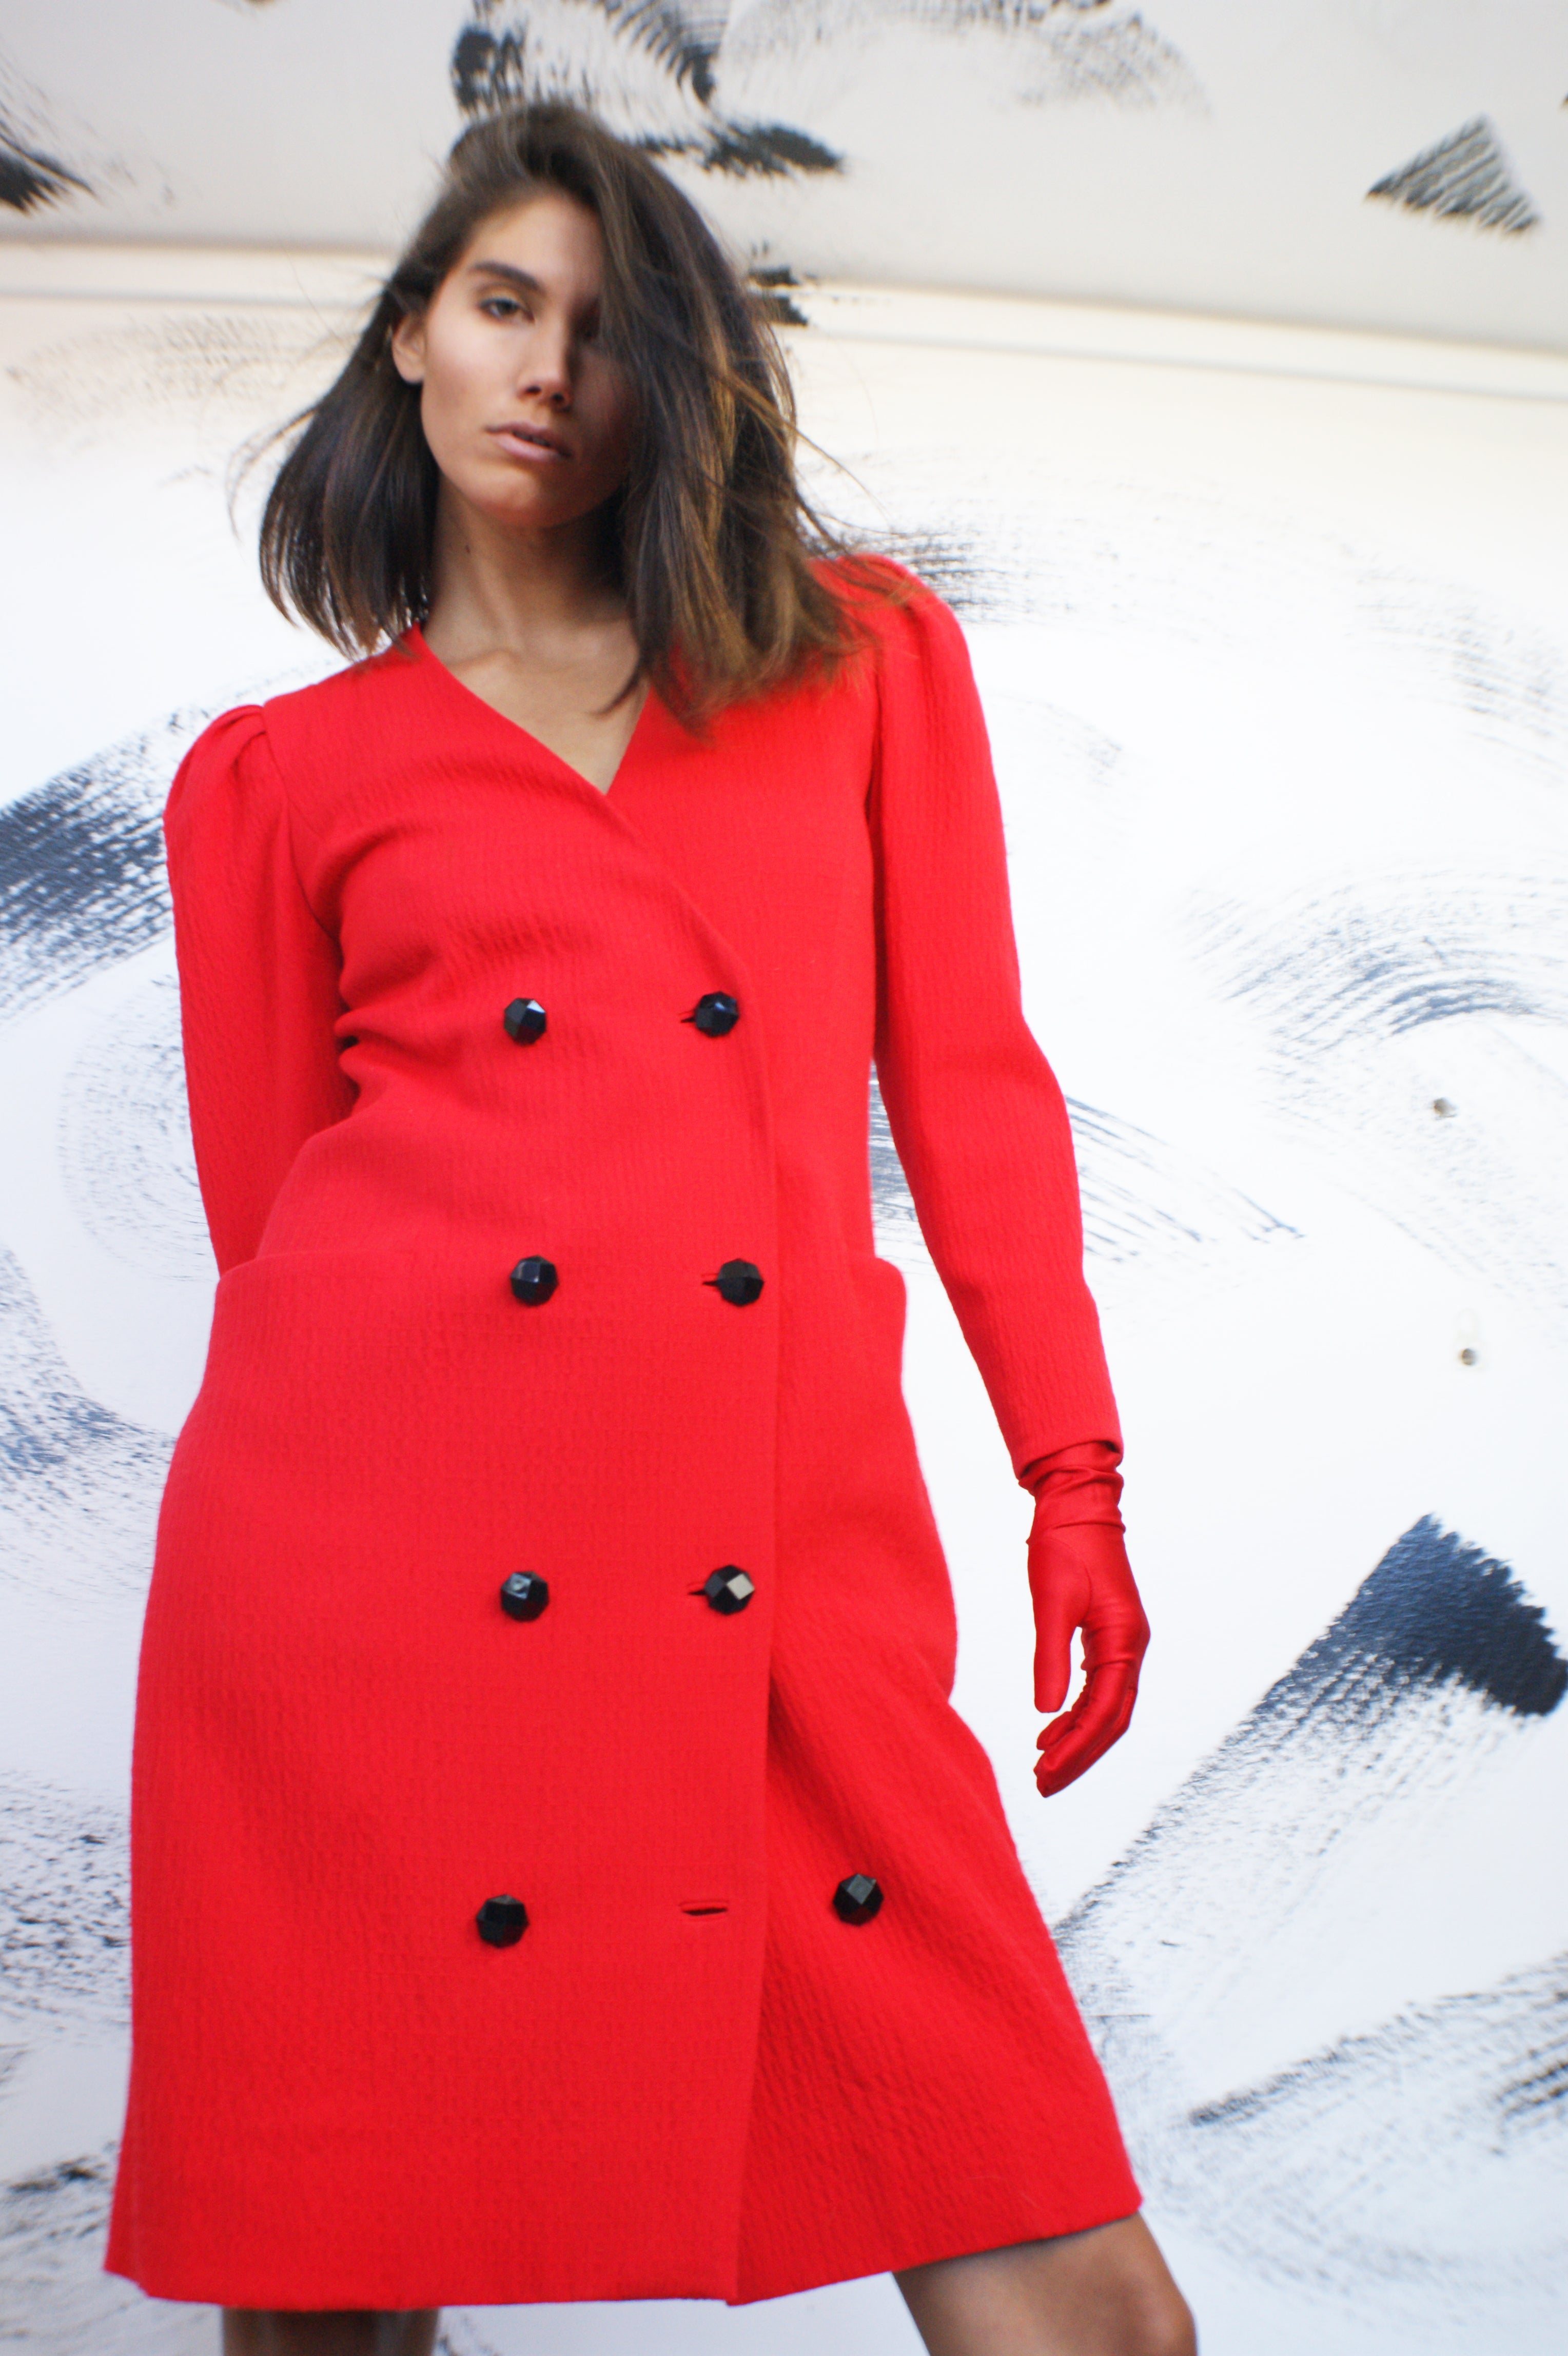 Red Unique 1980's Coat-Dress - ULTRA-CAT